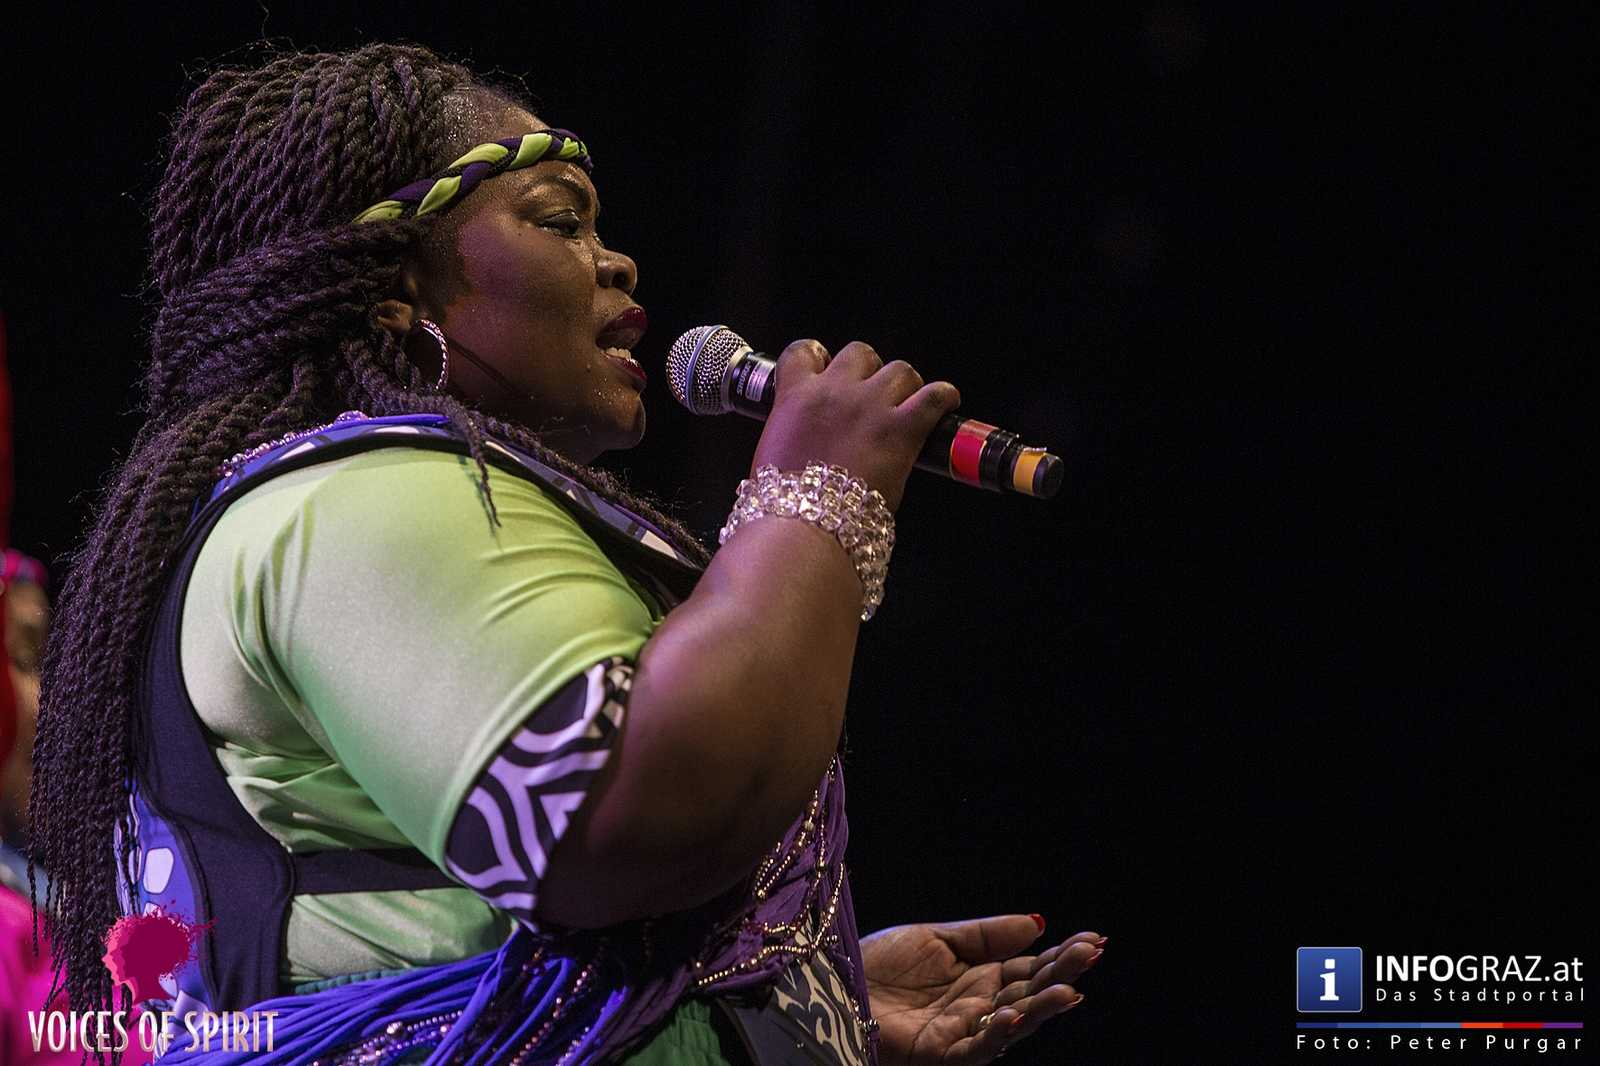 soweto gospel choir internationales chorfestival statdthalle graz voices of spirit eroeffnung festivals 2016 091